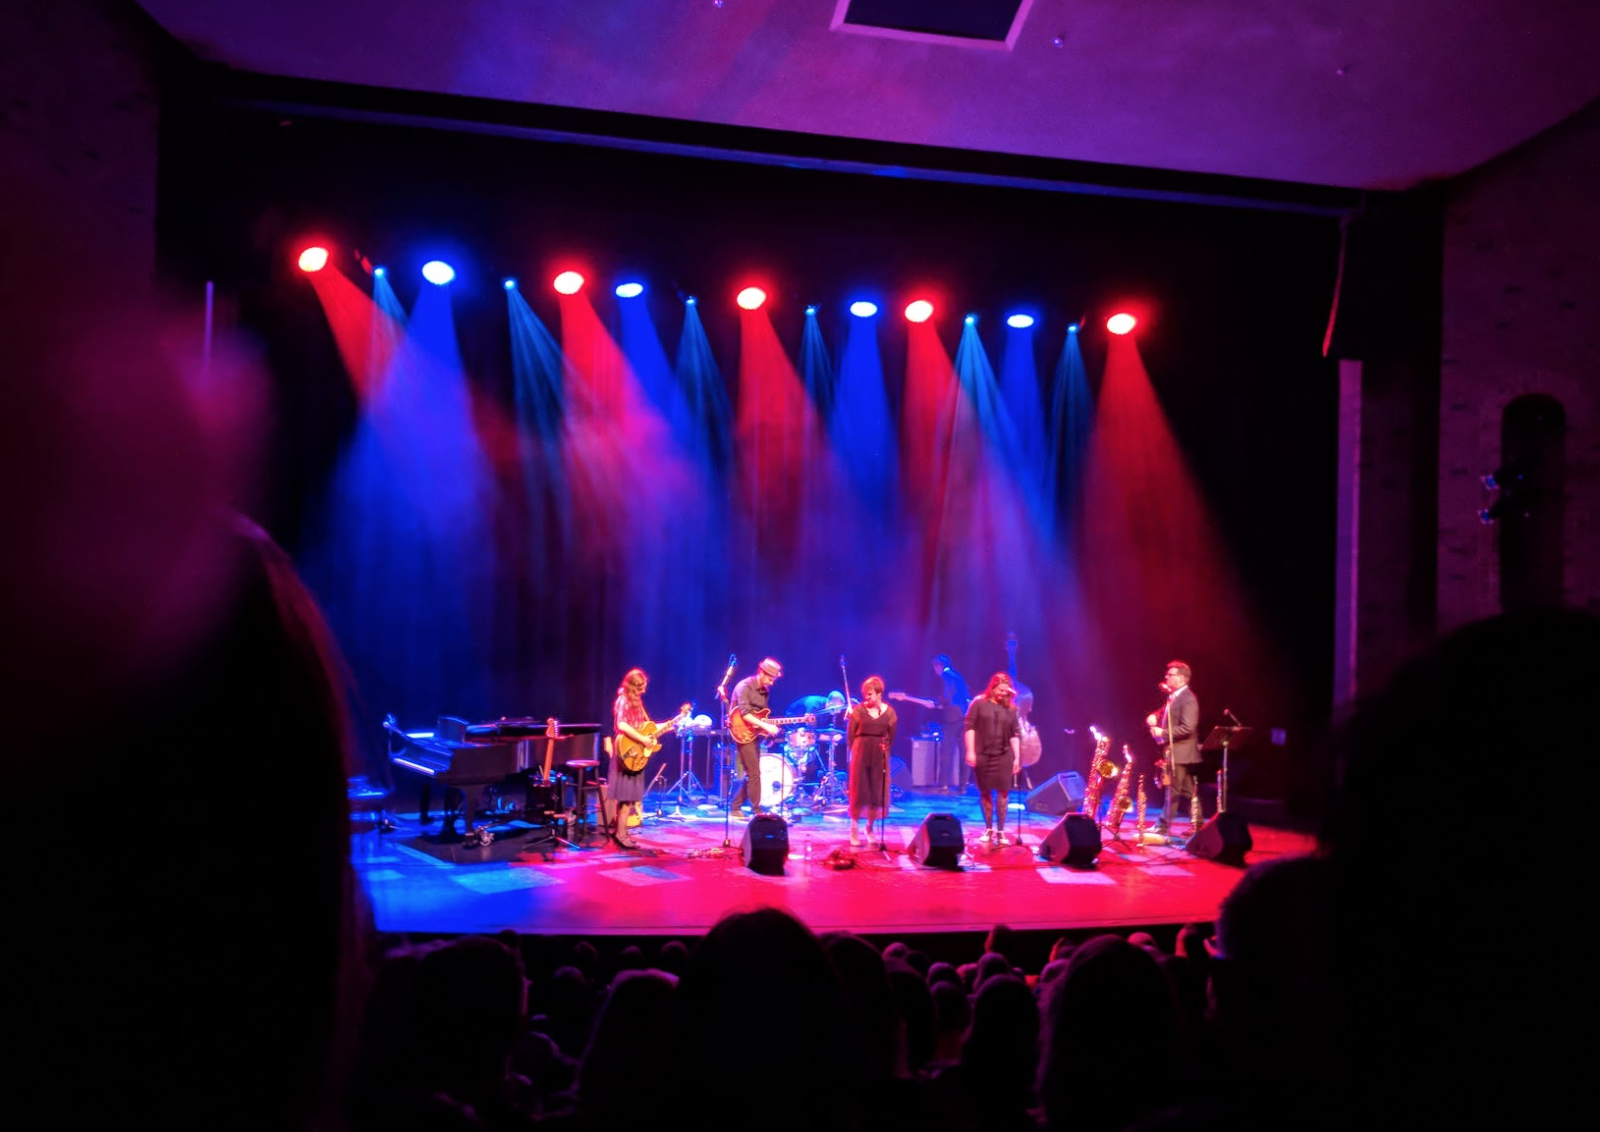 On a personal note, it was wonderful to see a packed house for the Arden's presentation of Colleen Brown sings the Joni Mitchel Songbook (featuring St. Albert's own Peter Belec on guitar!). I highly recommend keeping an eye on the Arden's Professional Series shows for incredible performances.